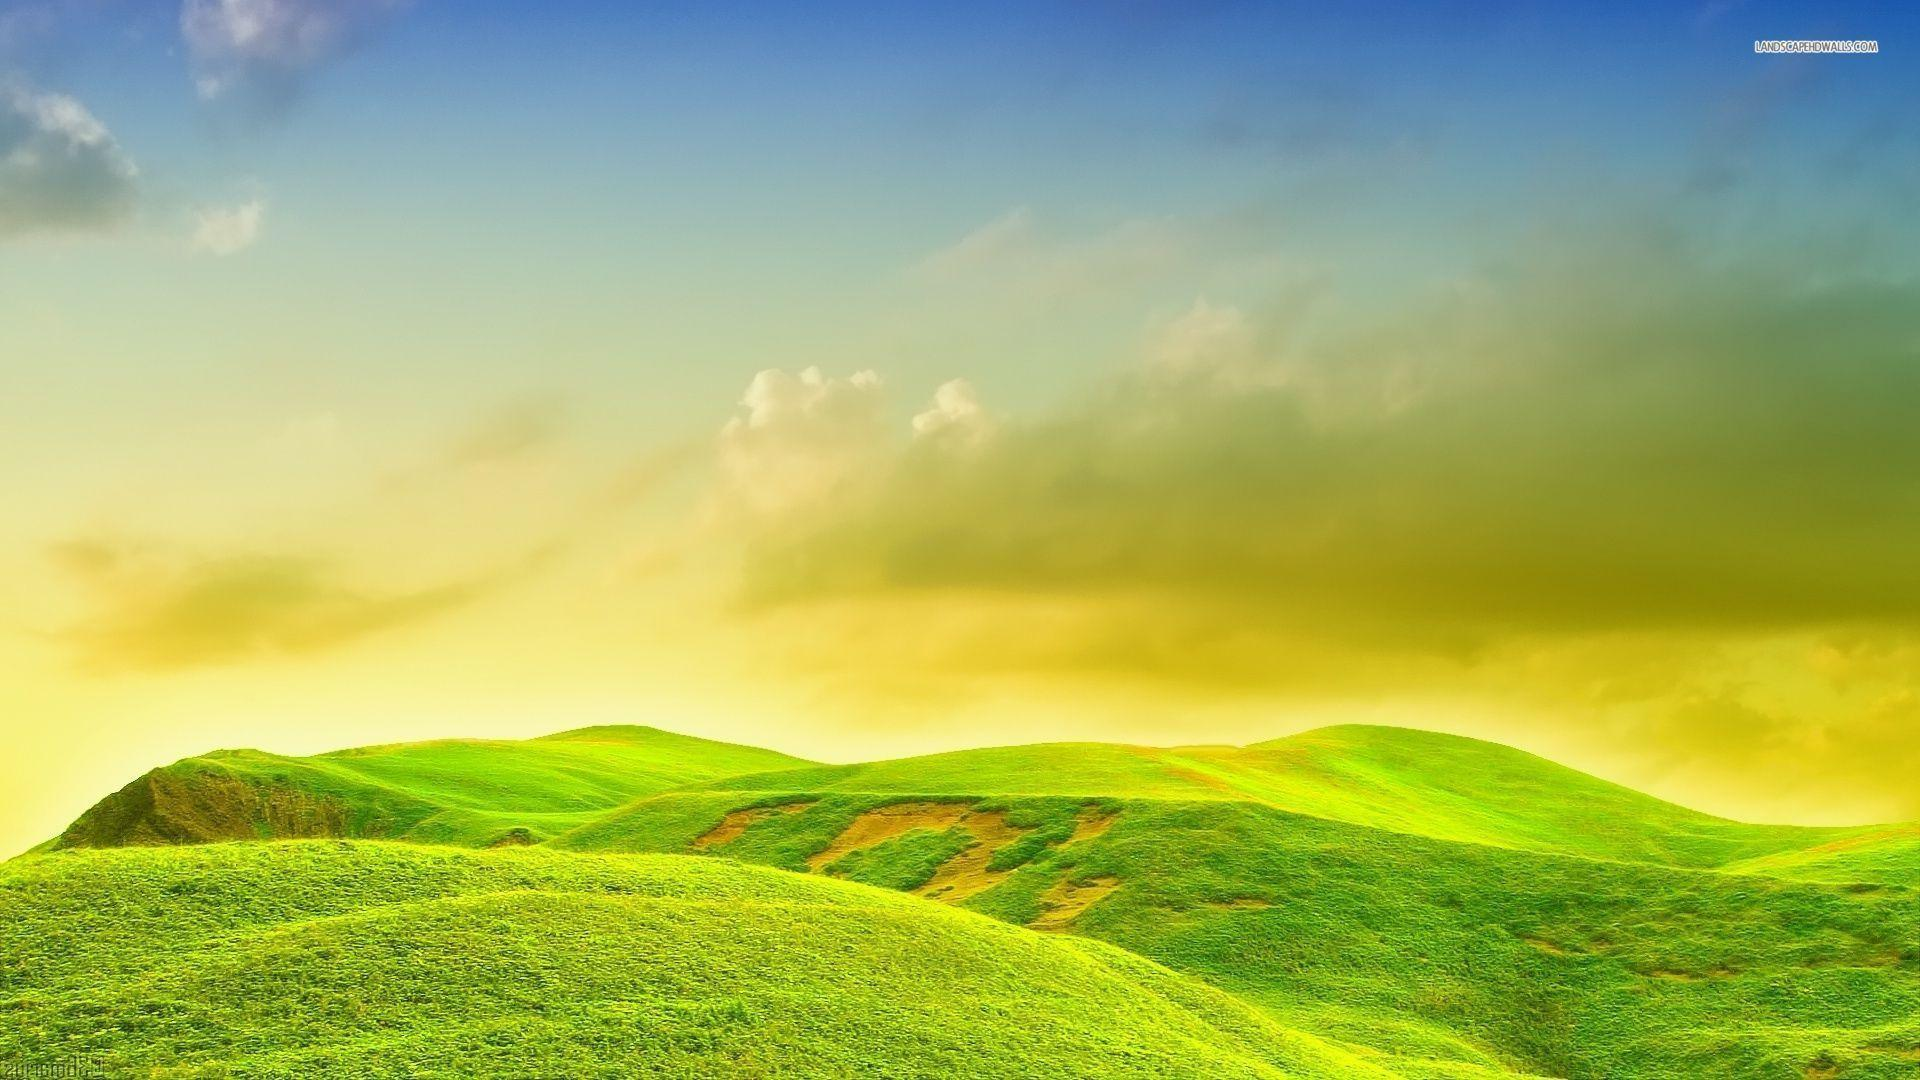 green hills wallpapers wallpaper cave clip art scrolls frames clip art scroll lines